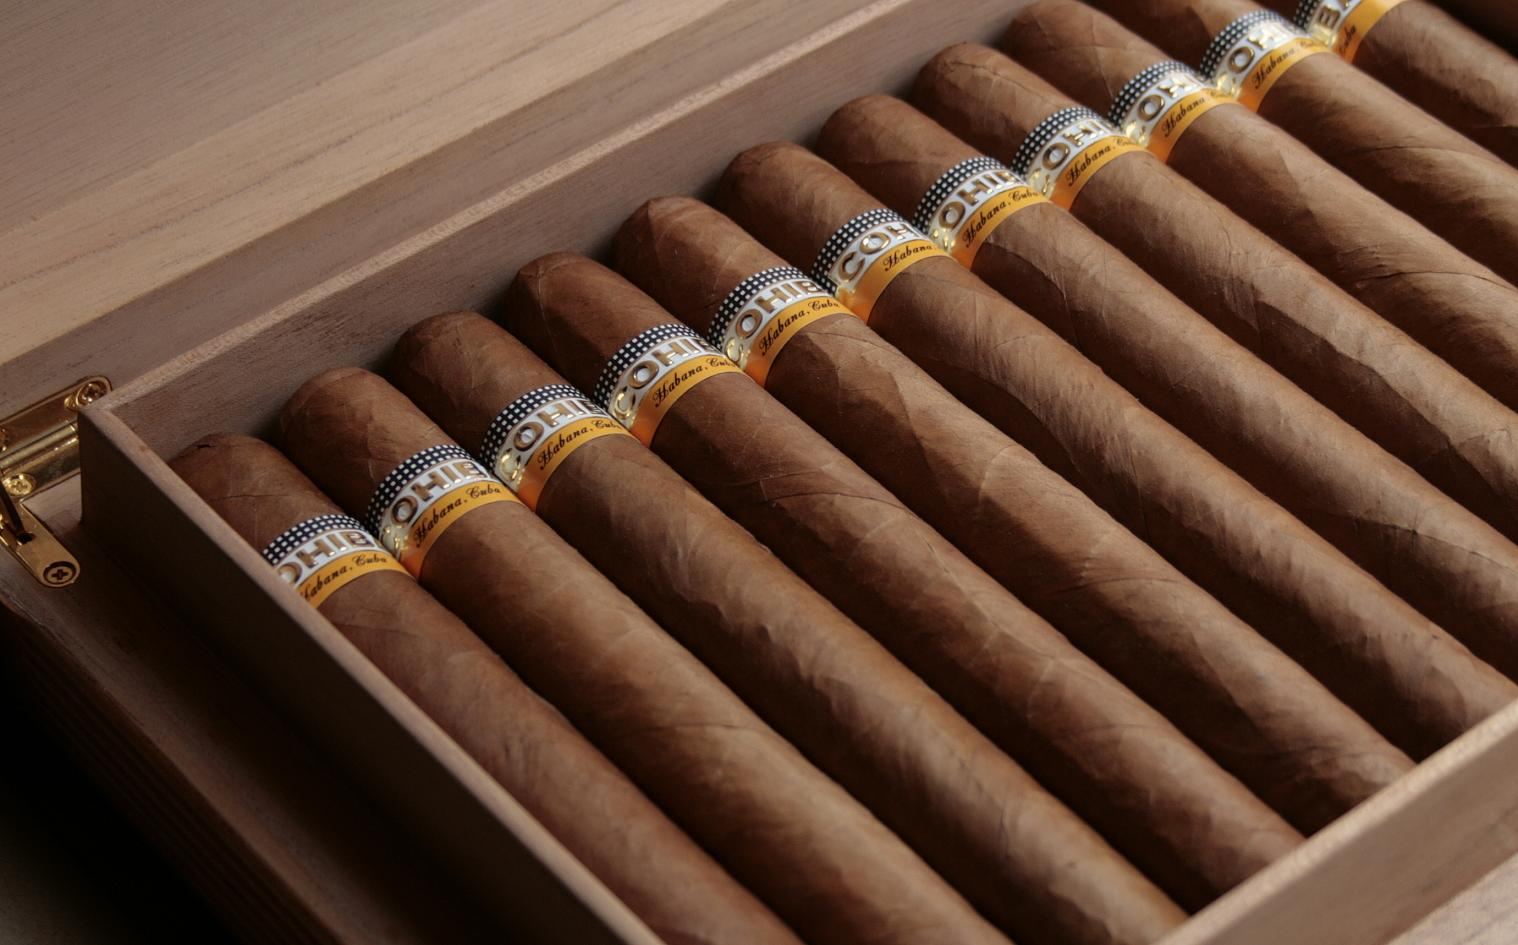 Cigars Cohiba Wallpaper 1518x945 Cigars Cohiba Cuban 1518x945